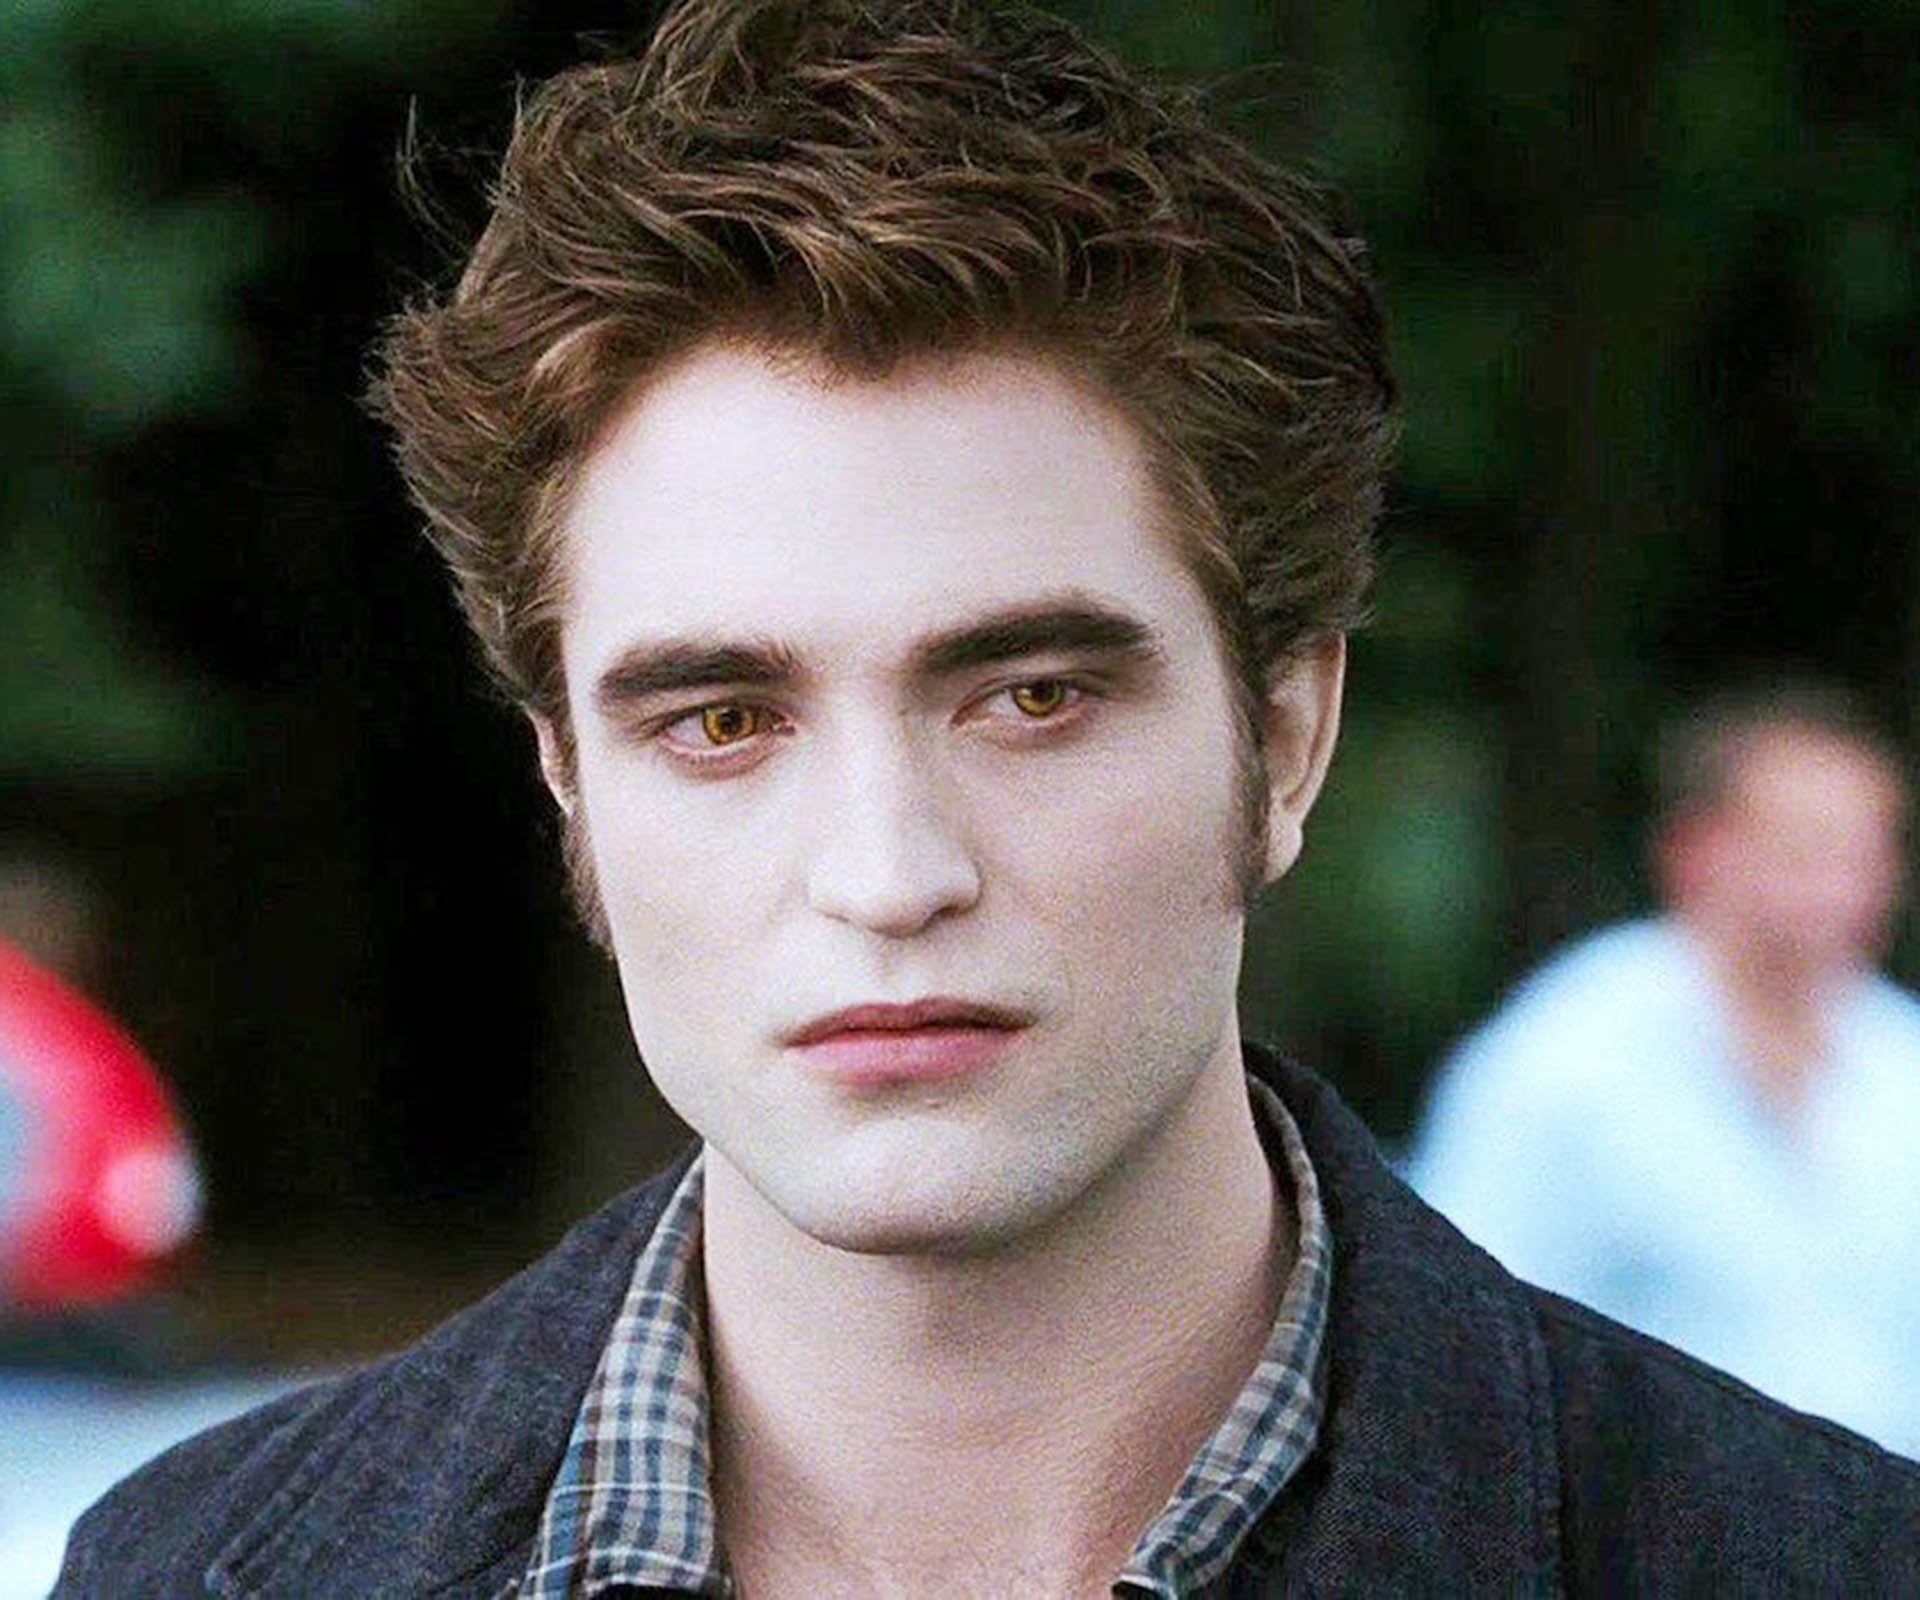 Robert Pattinson says he was almost fired from 'Twilight'